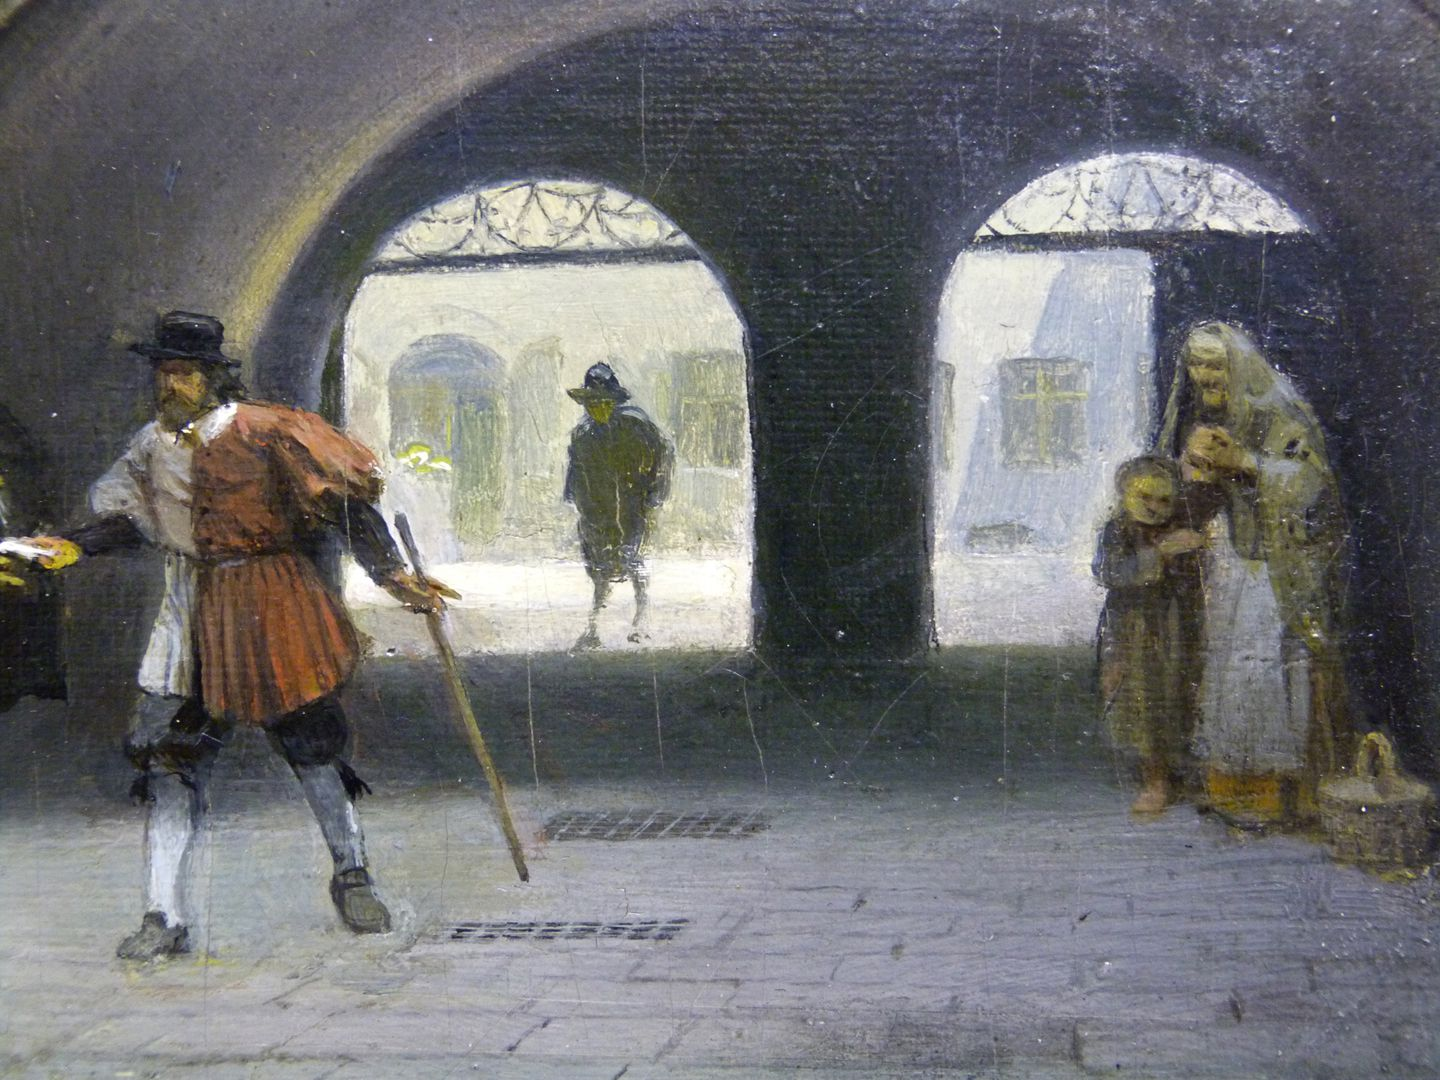 The small town hall courtyard in Nuremberg Picture lower half, detail with town servant and supplicant